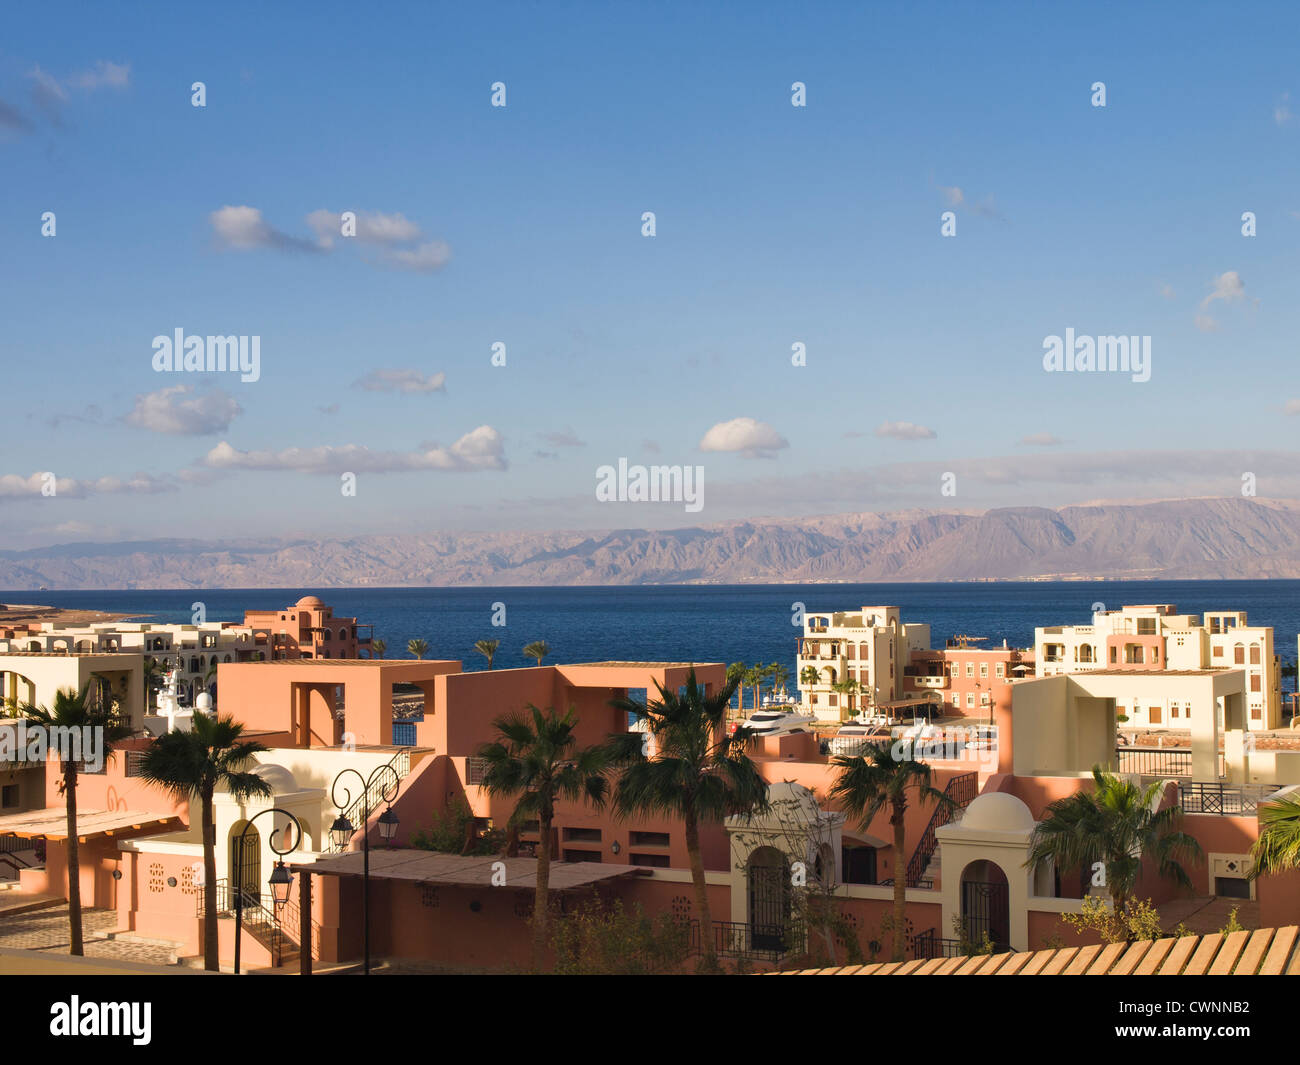 Over the rooftops in Tala Bay resort south of Aqaba Jordan you can see the Red Sea and across to Sinai and Egypt - Stock Image